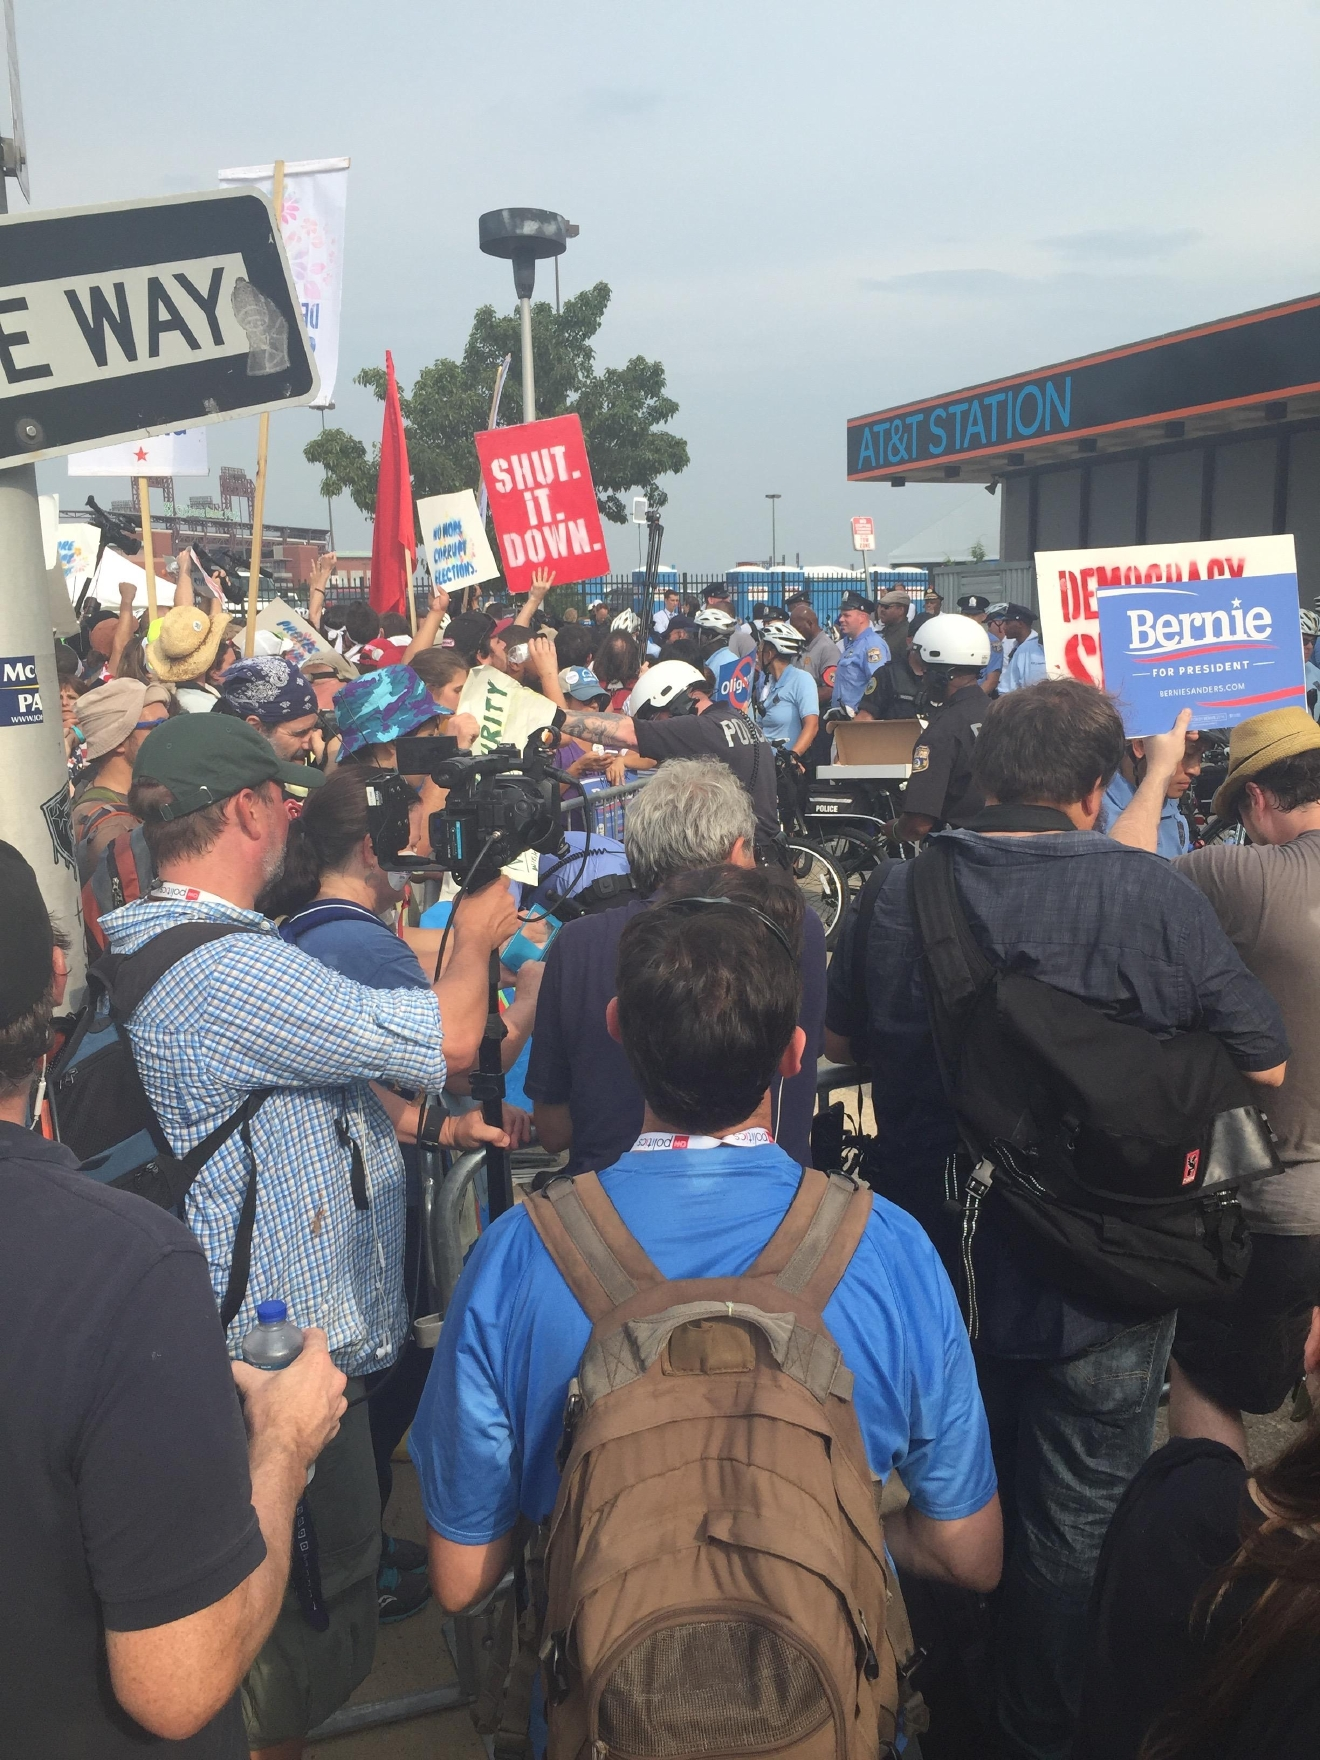 Protests outside of the Democratic National Convention. (Amanda Ota, Sinclair Broadcast Group)